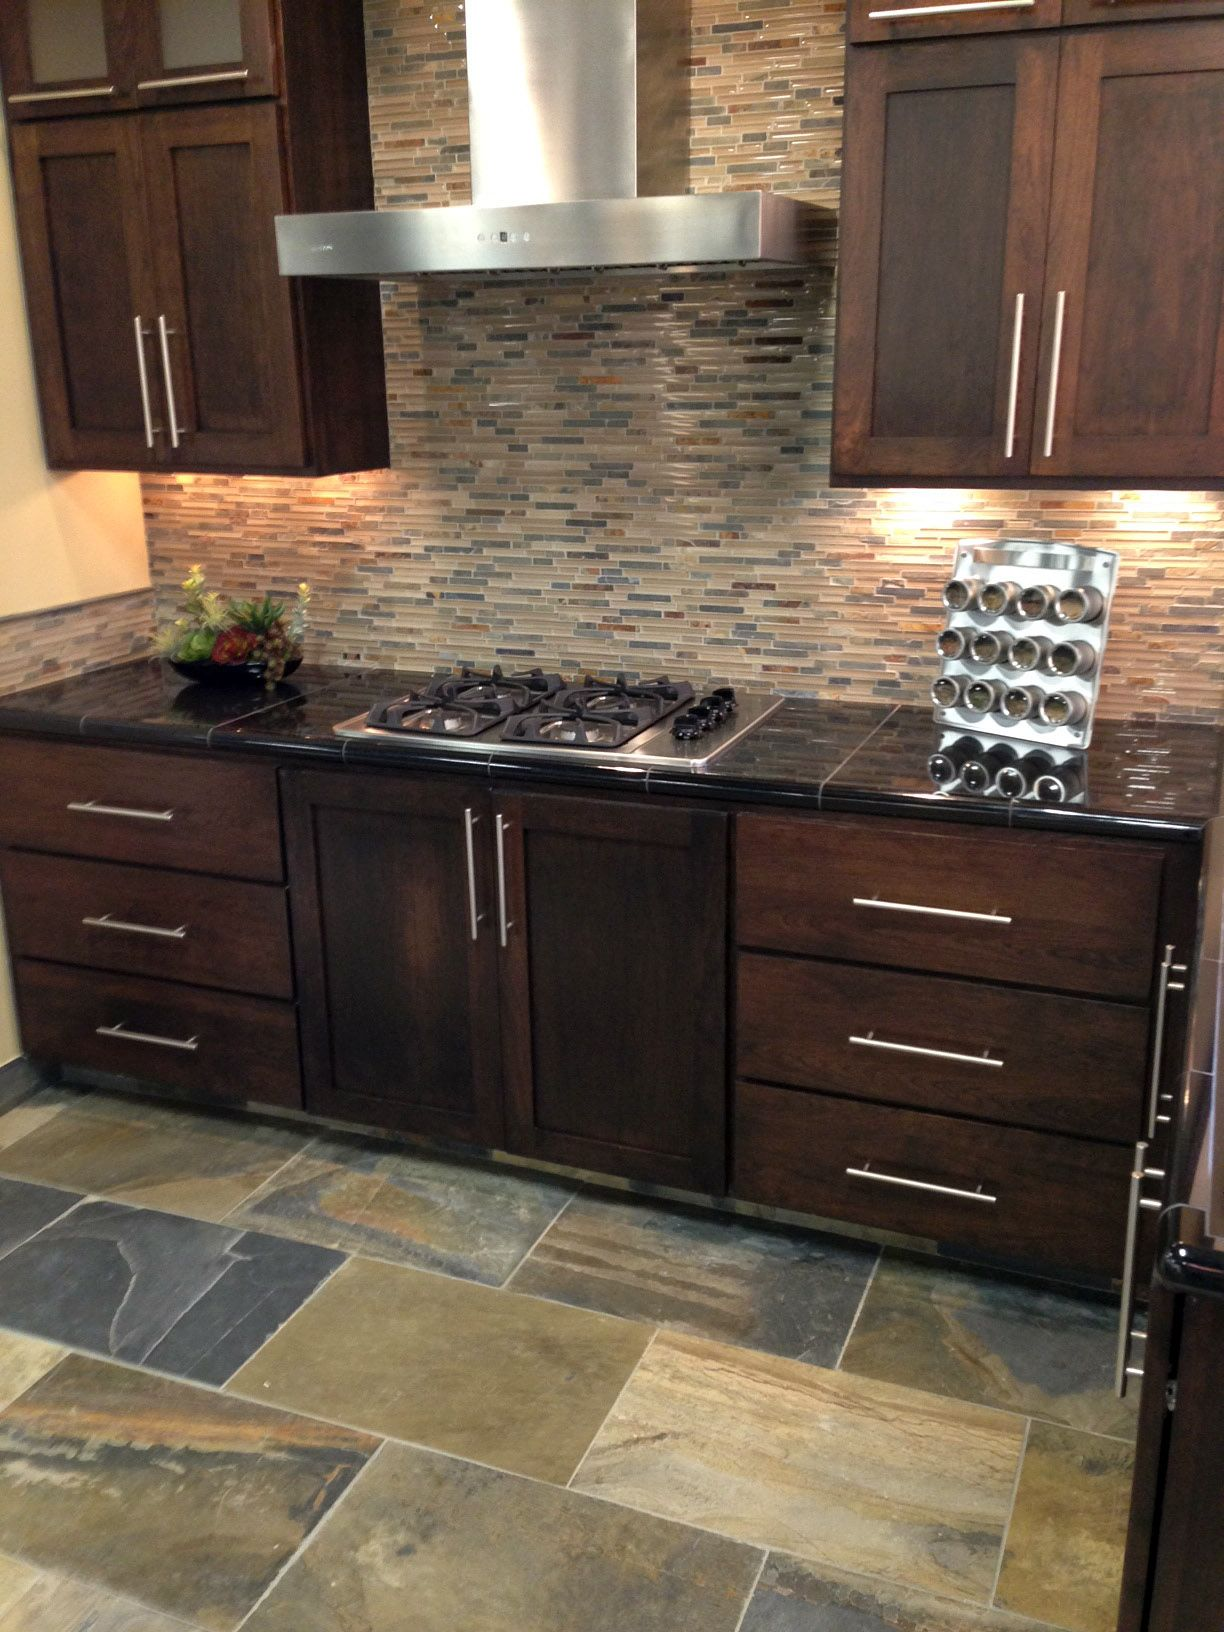 black slate floor tiles kitchen kingston brass faucet stone and glass mixed mosaic backsplash with oversized